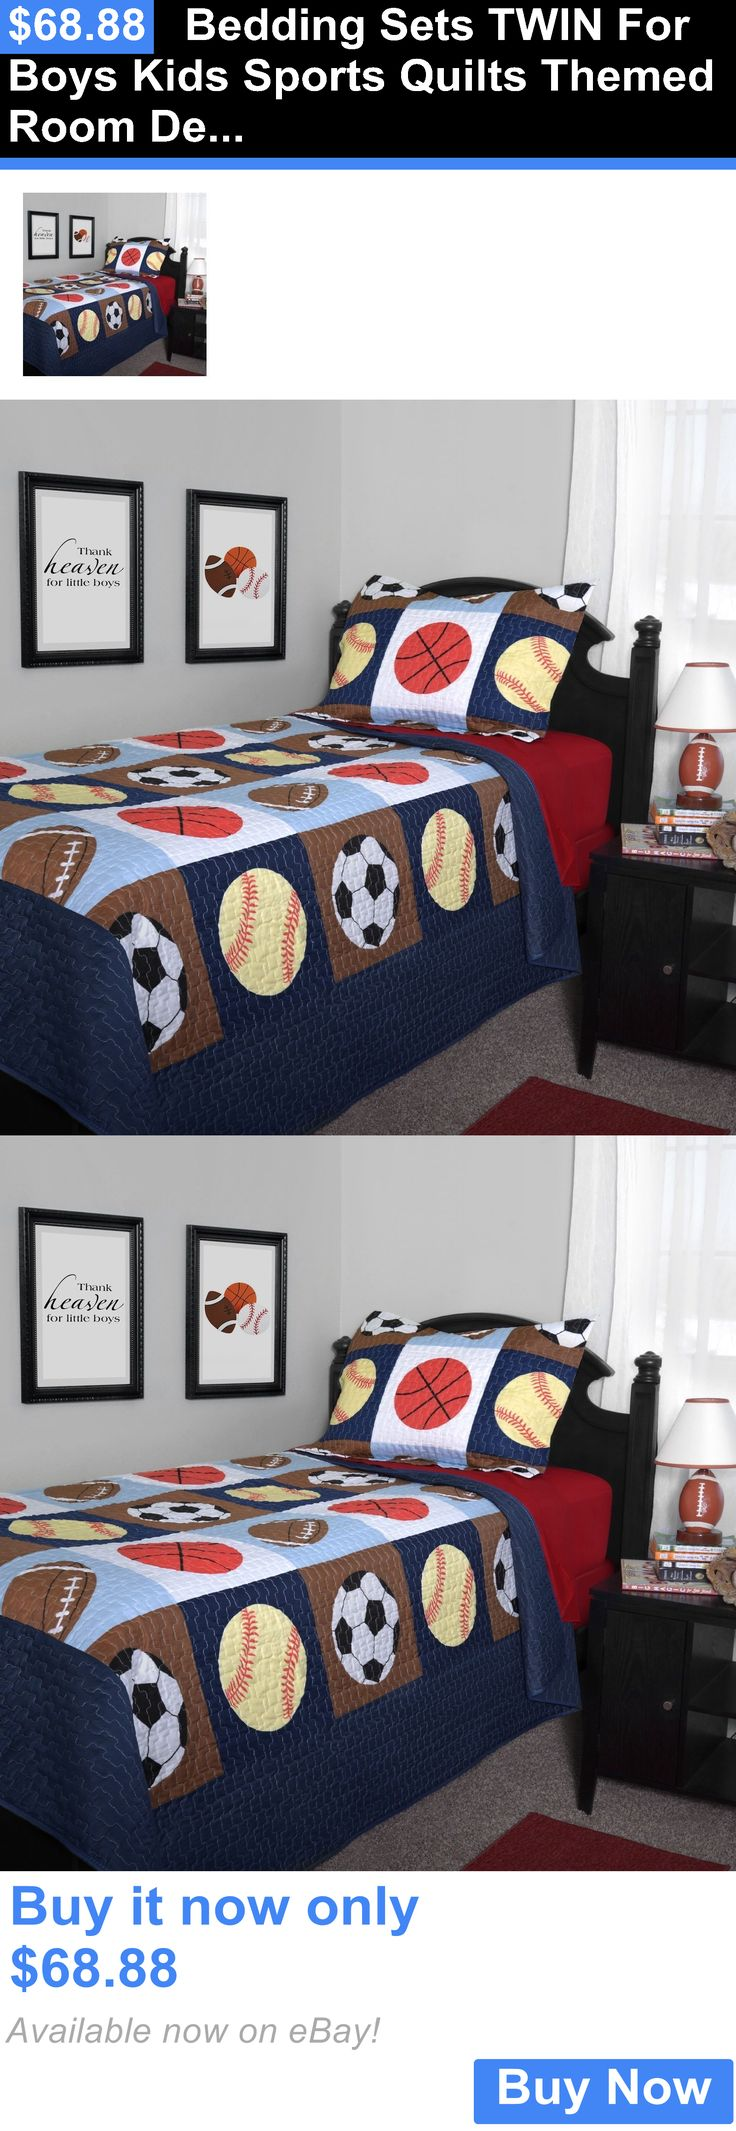 Kids at Home: Bedding Sets Twin For Boys Kids Sports Quilts Themed Room Decor Bedroom Bed 2Pcs BUY IT NOW ONLY: $68.88